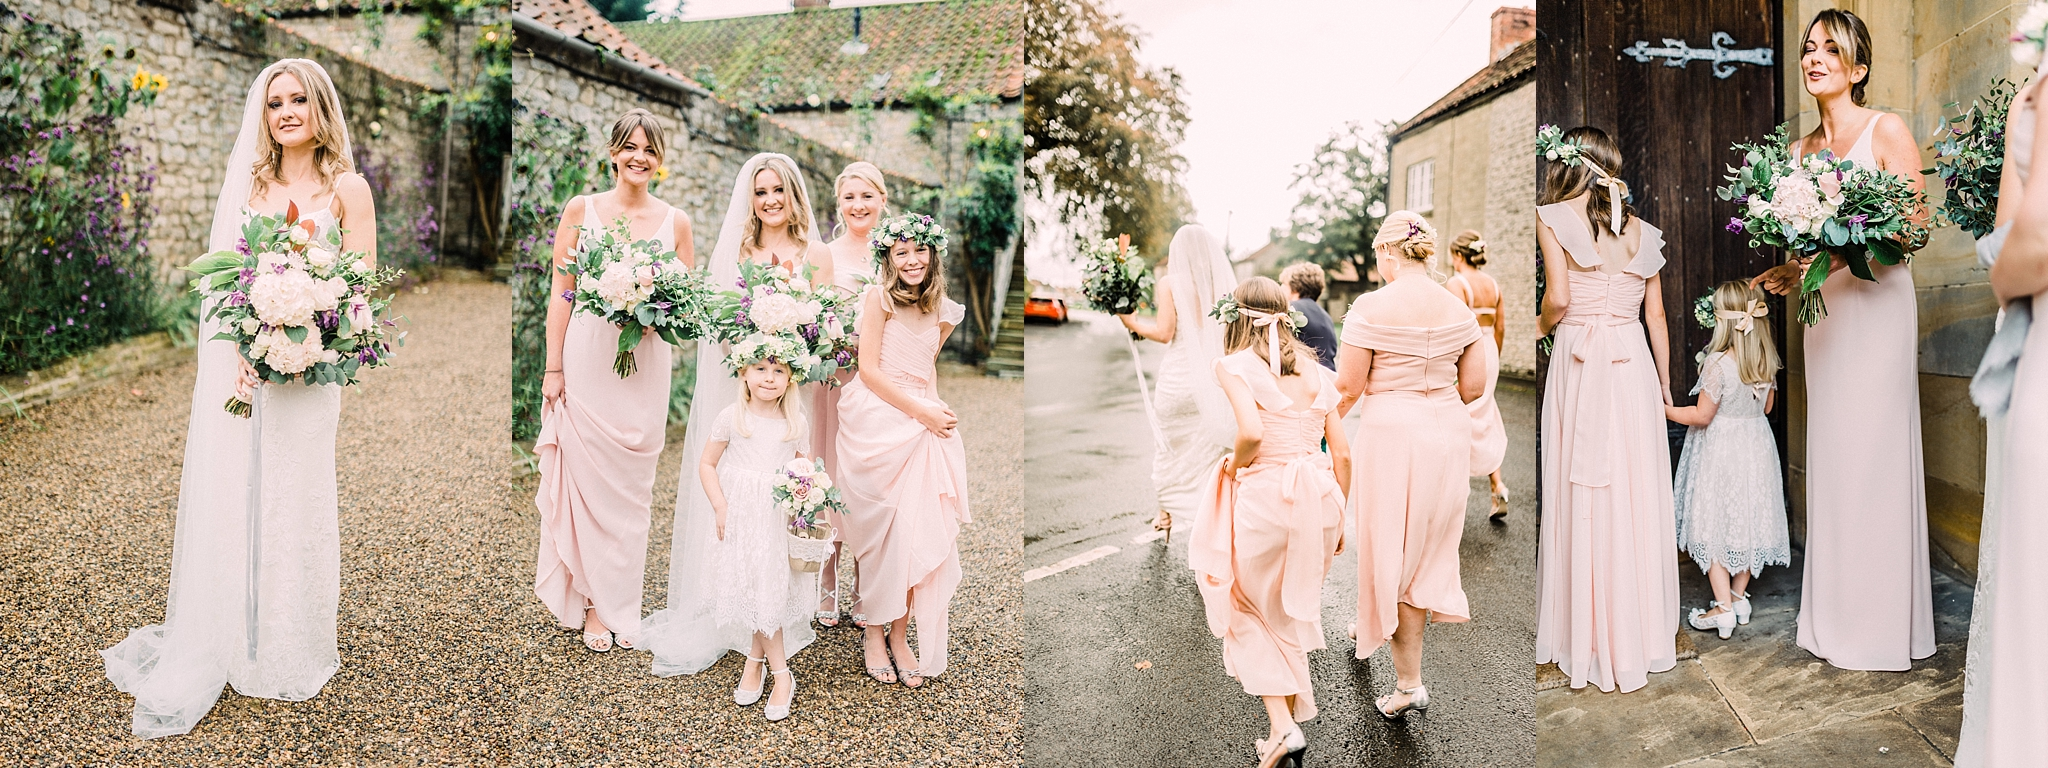 Bride and her bridesmaids at the Pheasant Hotel, Harome